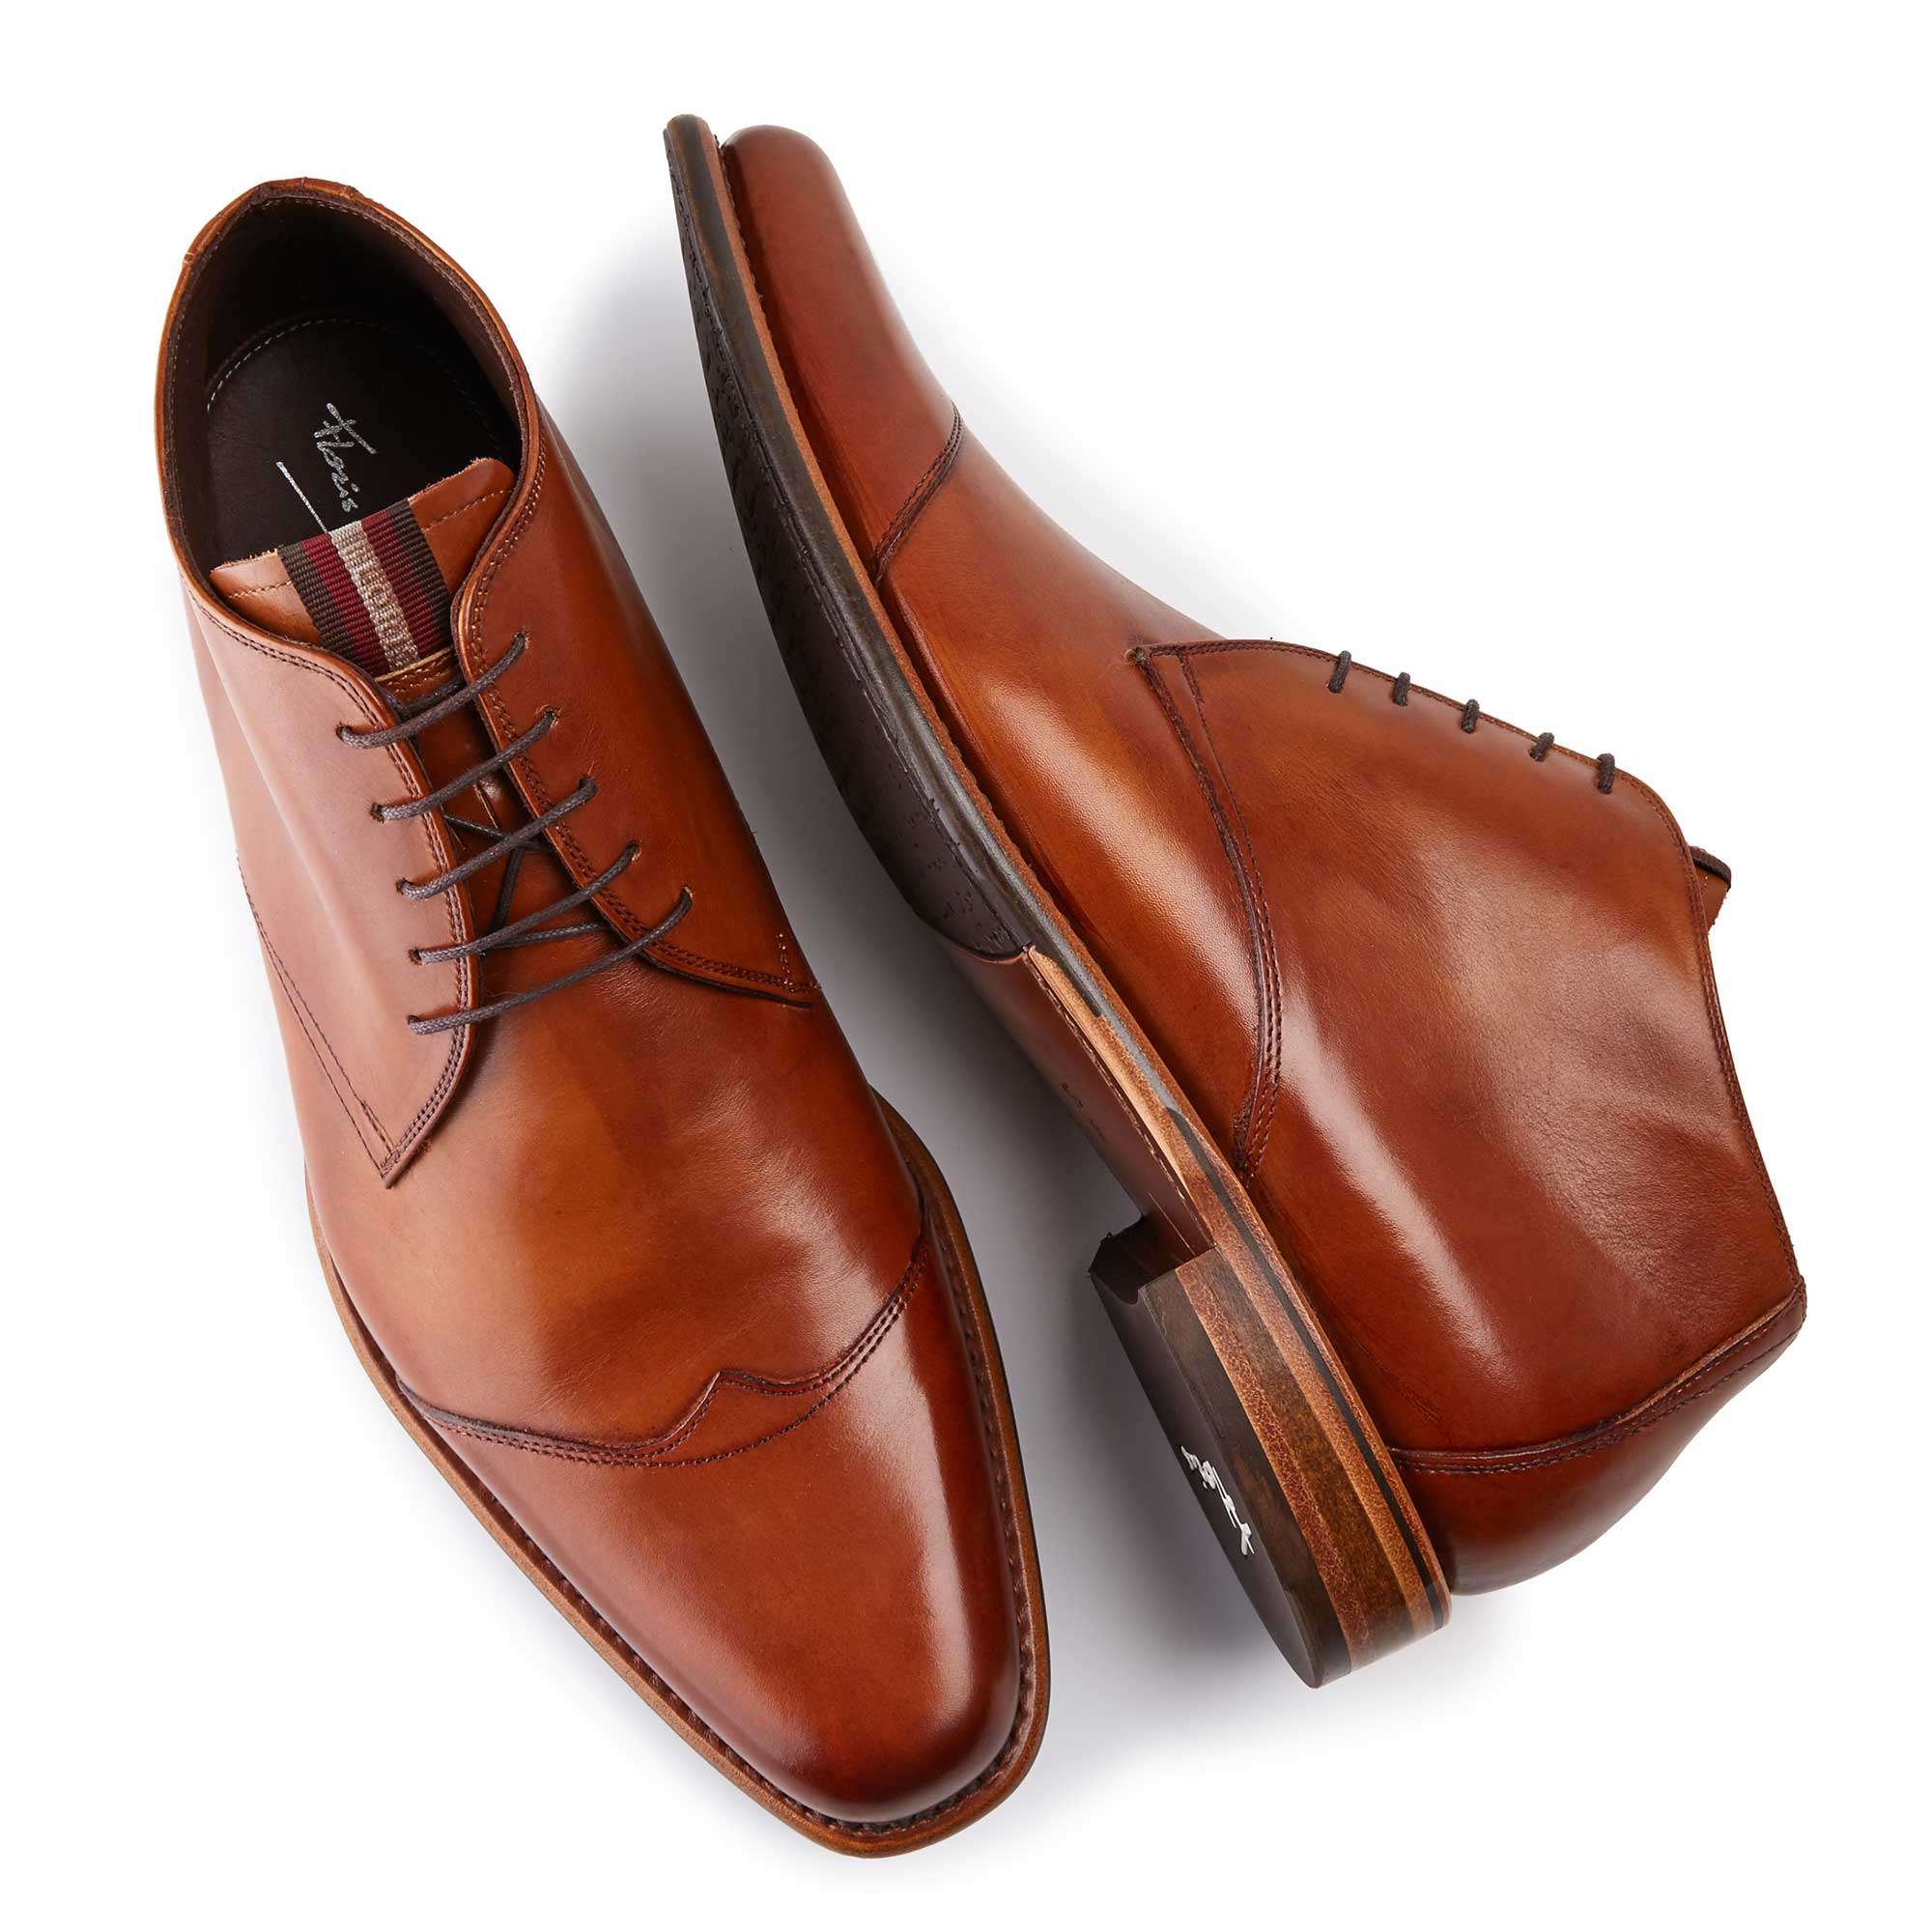 10077/11 - Cognac coloured leather half-high men's lace-up boot